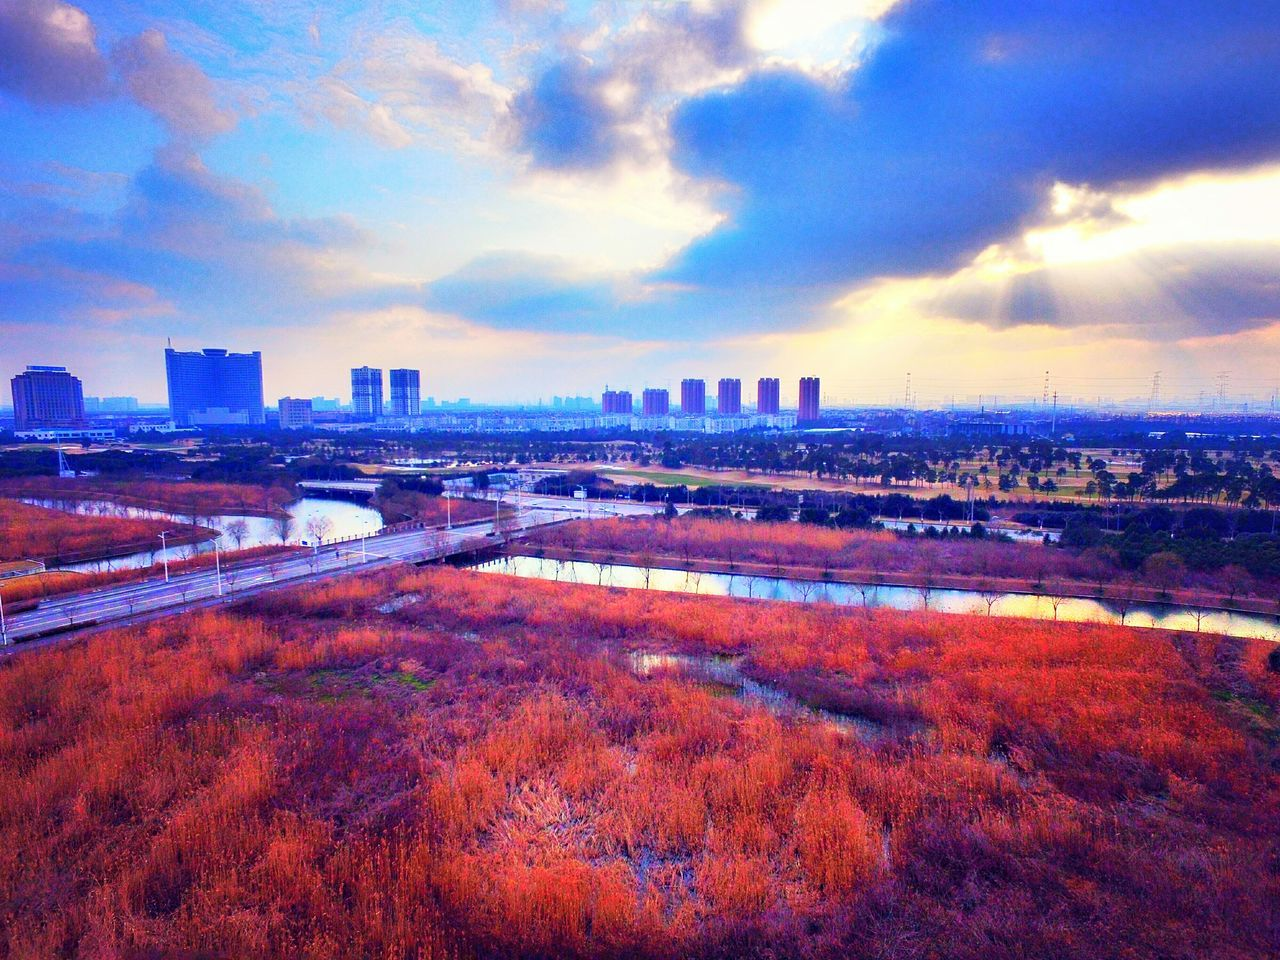 Effects Taking Photos Unmanned Aerial Vehicle Blue Sky Niceday Nice Atmosphere Nice View Horizon Ground Thickeyebrows Cheese! Upper Landscape_Collection Urbanlabdscape City Edge